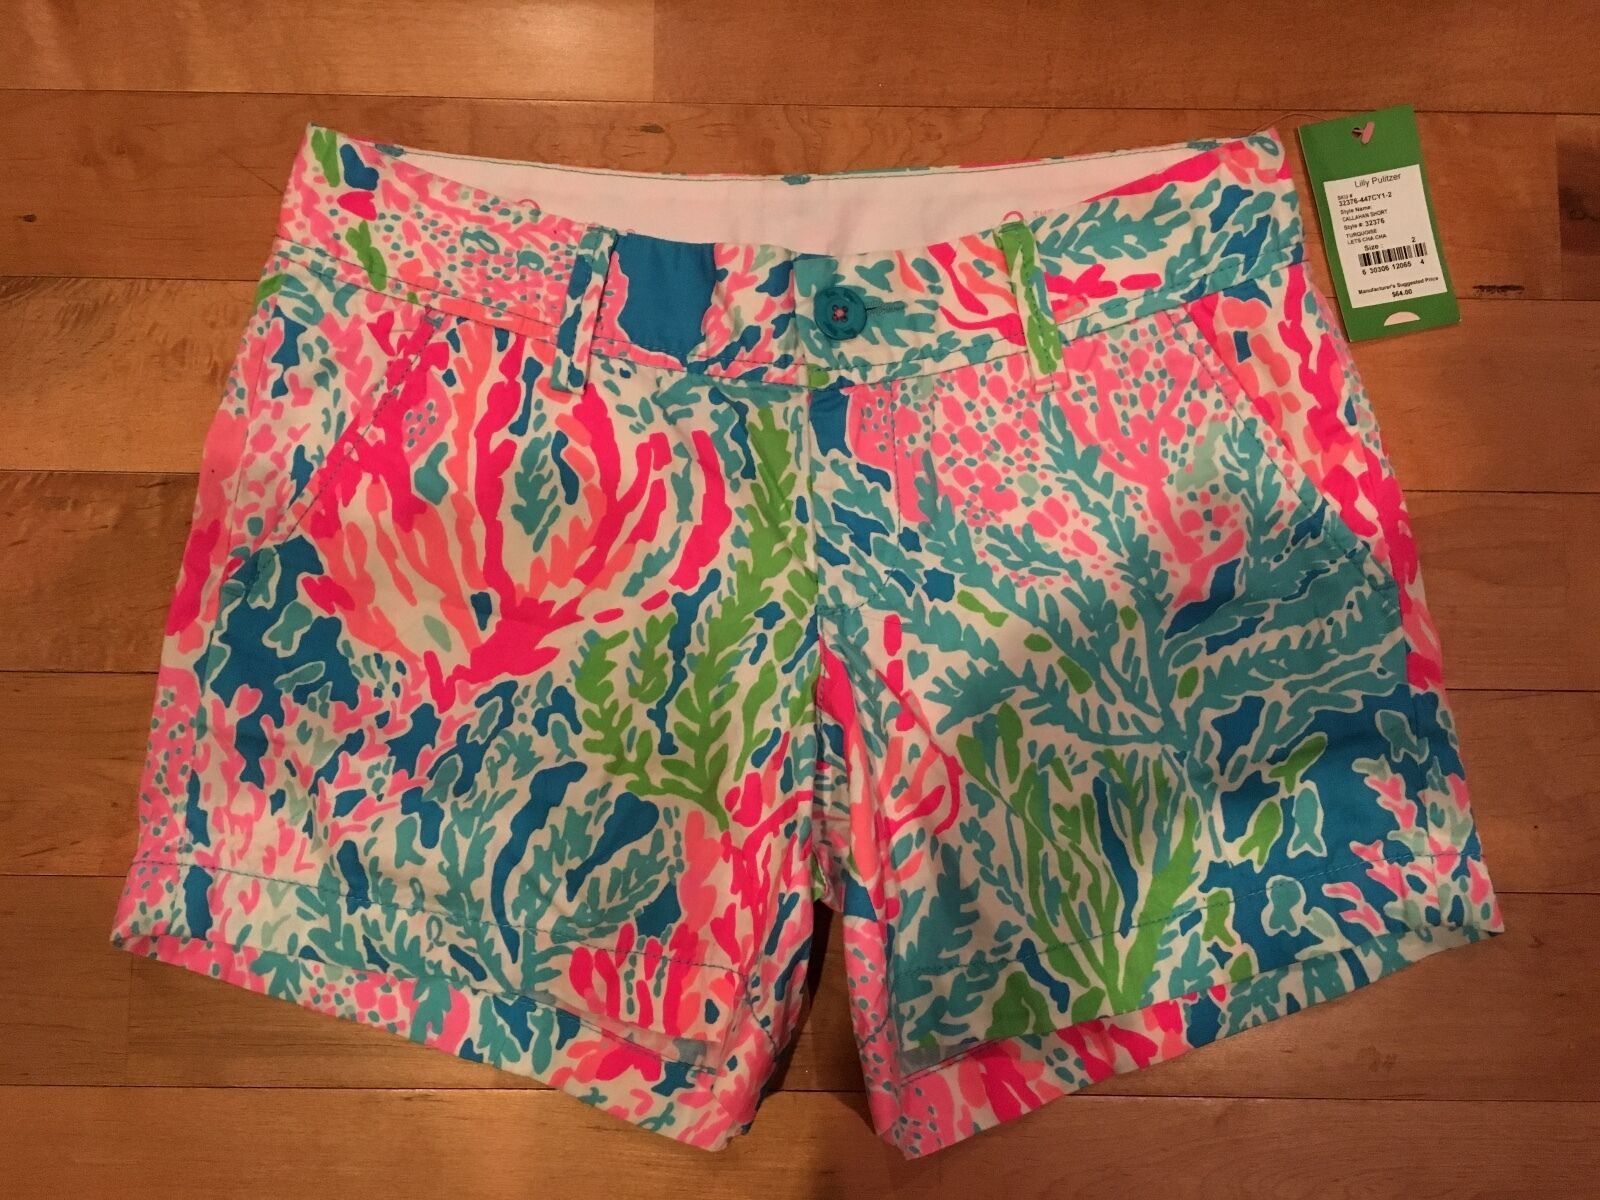 NEW Lilly Pulitzer Let's Cha Cha  Callahan Shorts Size 4 Coral Reef Holy Grail